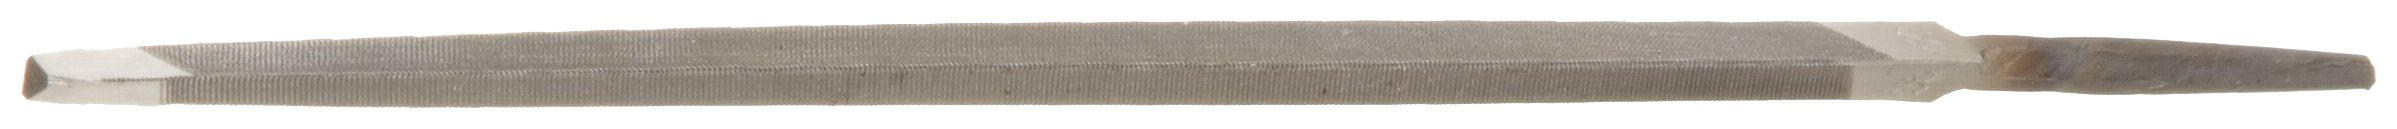 Nicholson Triangular Double Extra Slim Taper Hand File, Single Cut, American Pattern, 6'' Length (Pack of 12)